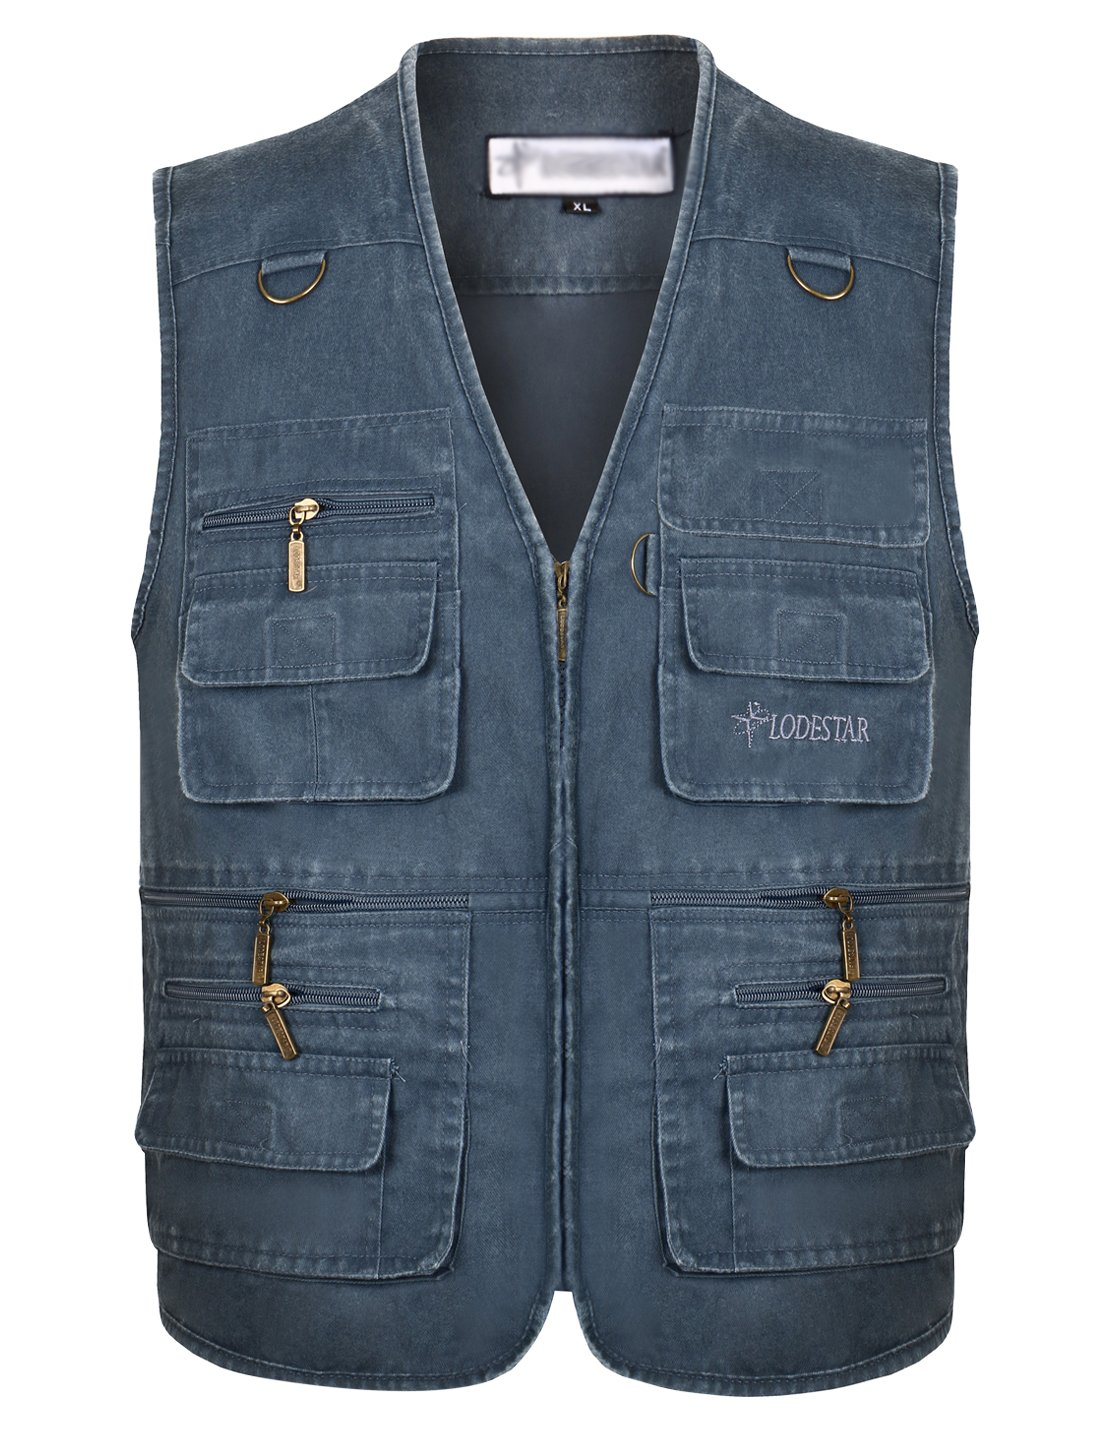 Gihuo Men's Casual Outdoor Leisure Lightweight Pockets Fishing Photo Journalist Denim Vest Plus Size (XXL, Blue) by Gihuo